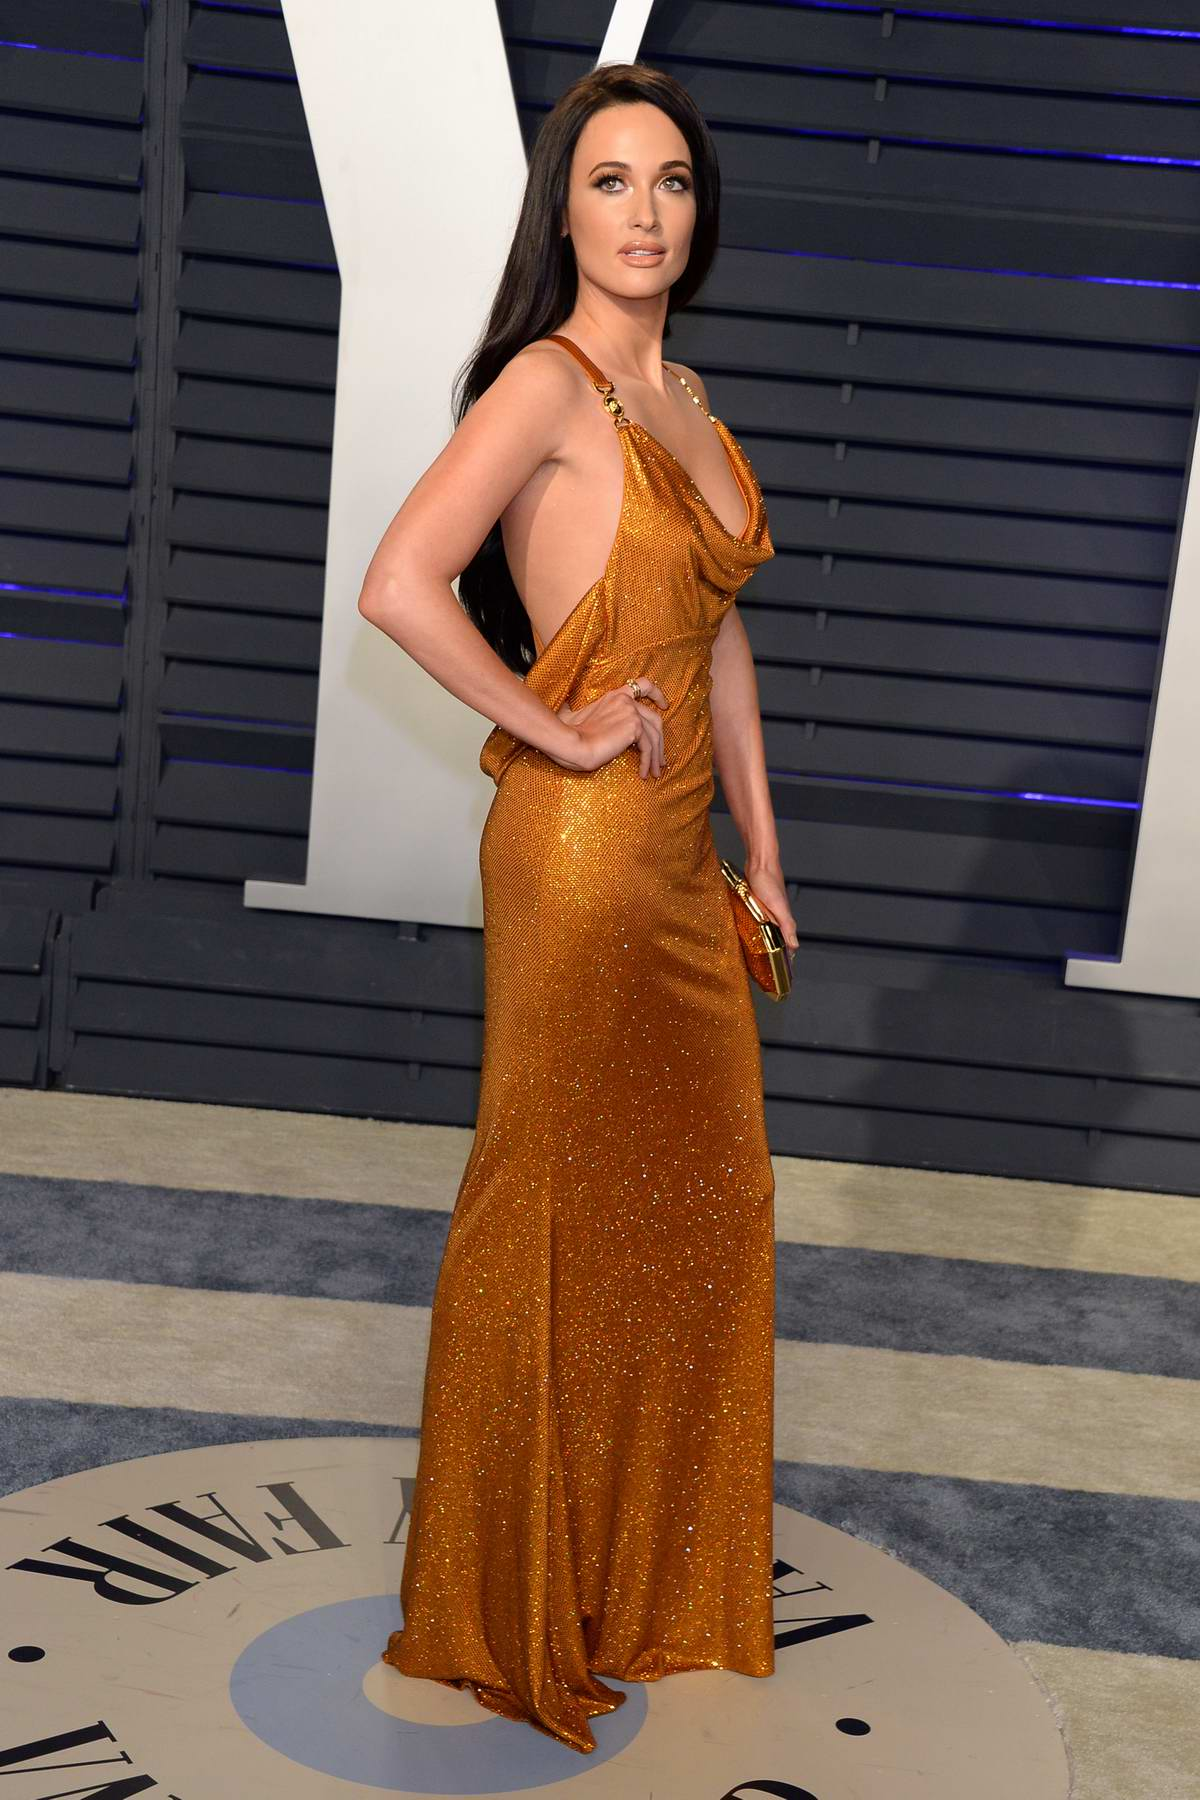 Kacey Musgraves attends the Vanity Fair Oscar Party at Wallis Annenberg Center for the Performing Arts in Beverly Hills, California